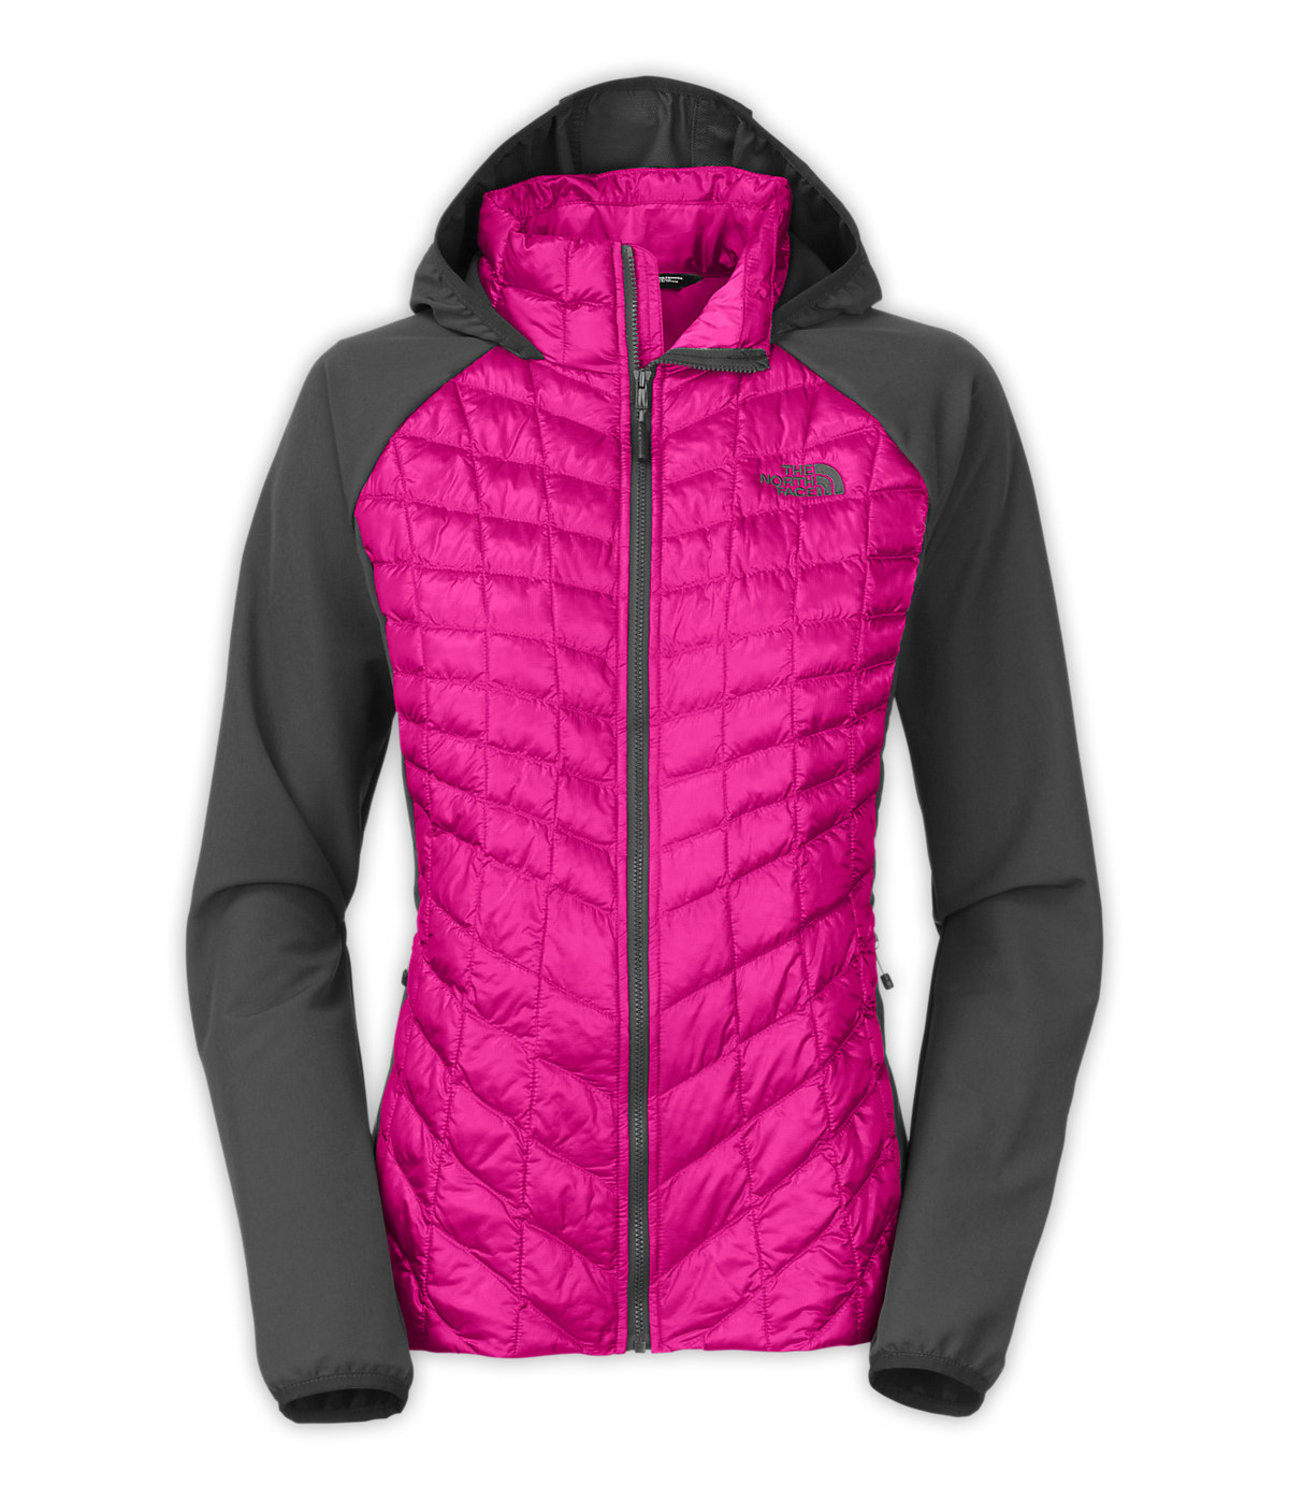 8e98f7af1 The North Face Women's Thermoball Hybrid Hoodie